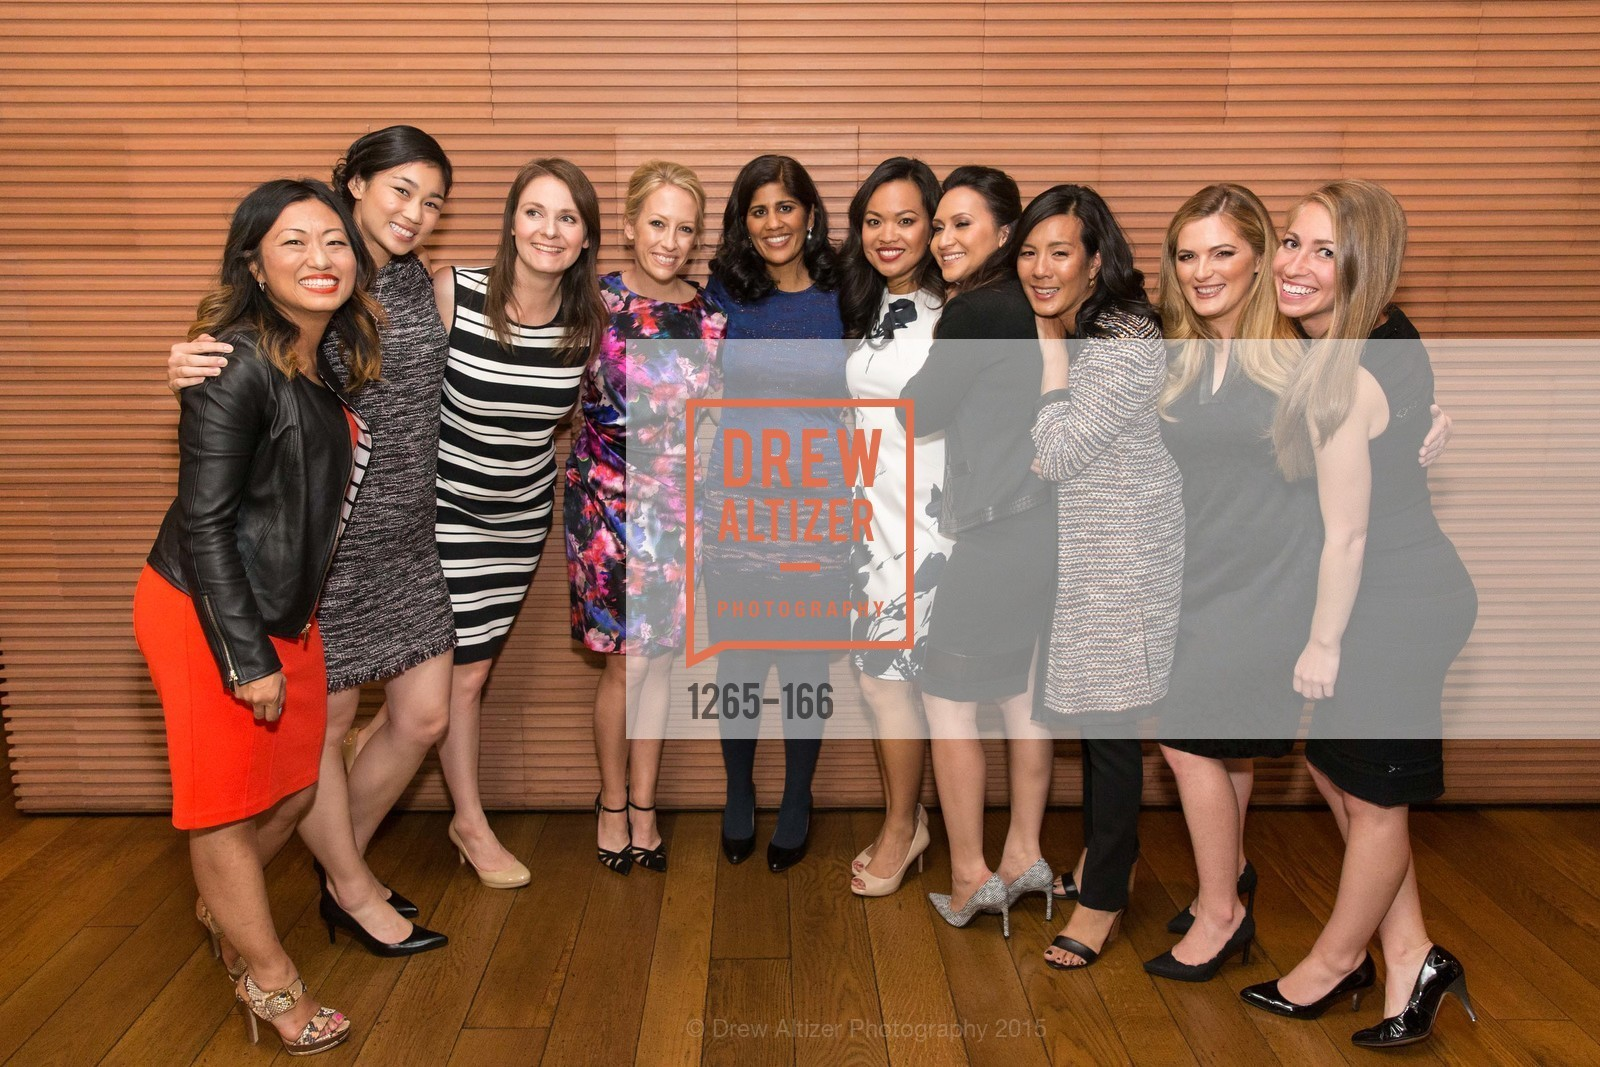 Jane Park, Tracy Chou, Melissa Zatlyn, Julia Hartz, Selina Tobaccowala, Mary Grove, Aileen Lee, Elizabeth Iorne, Elle Women in Tech, Prospect. 300 Spear Street, June 15th, 2015,Drew Altizer, Drew Altizer Photography, full-service event agency, private events, San Francisco photographer, photographer California